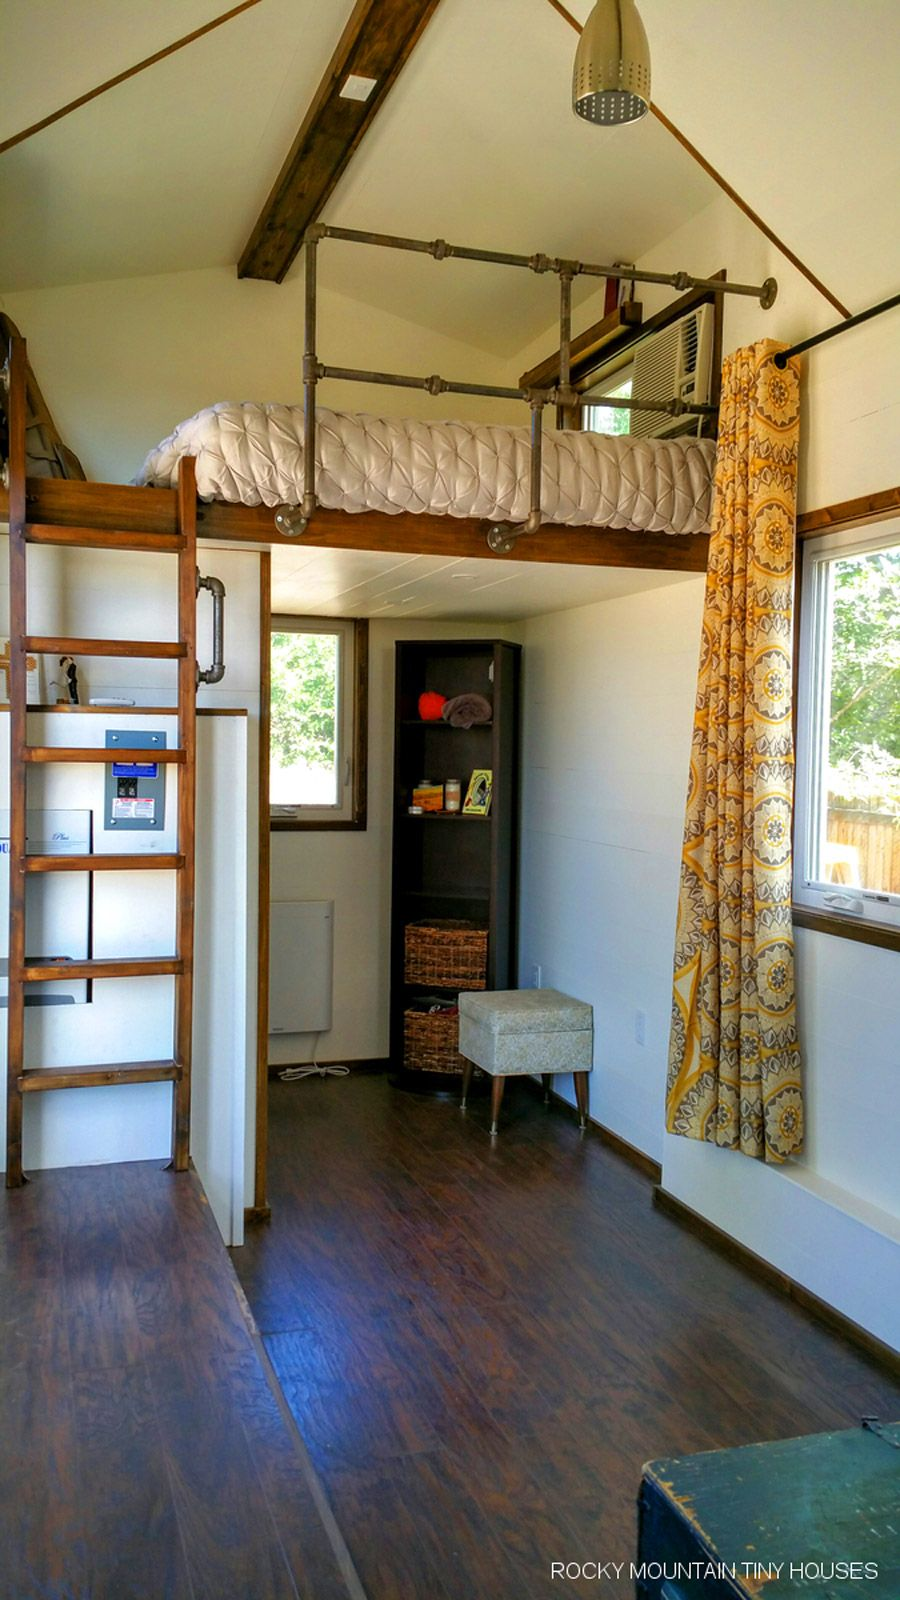 Albuquerque House Tiny House Swoon Tiny House Living Room Tiny House Inspiration